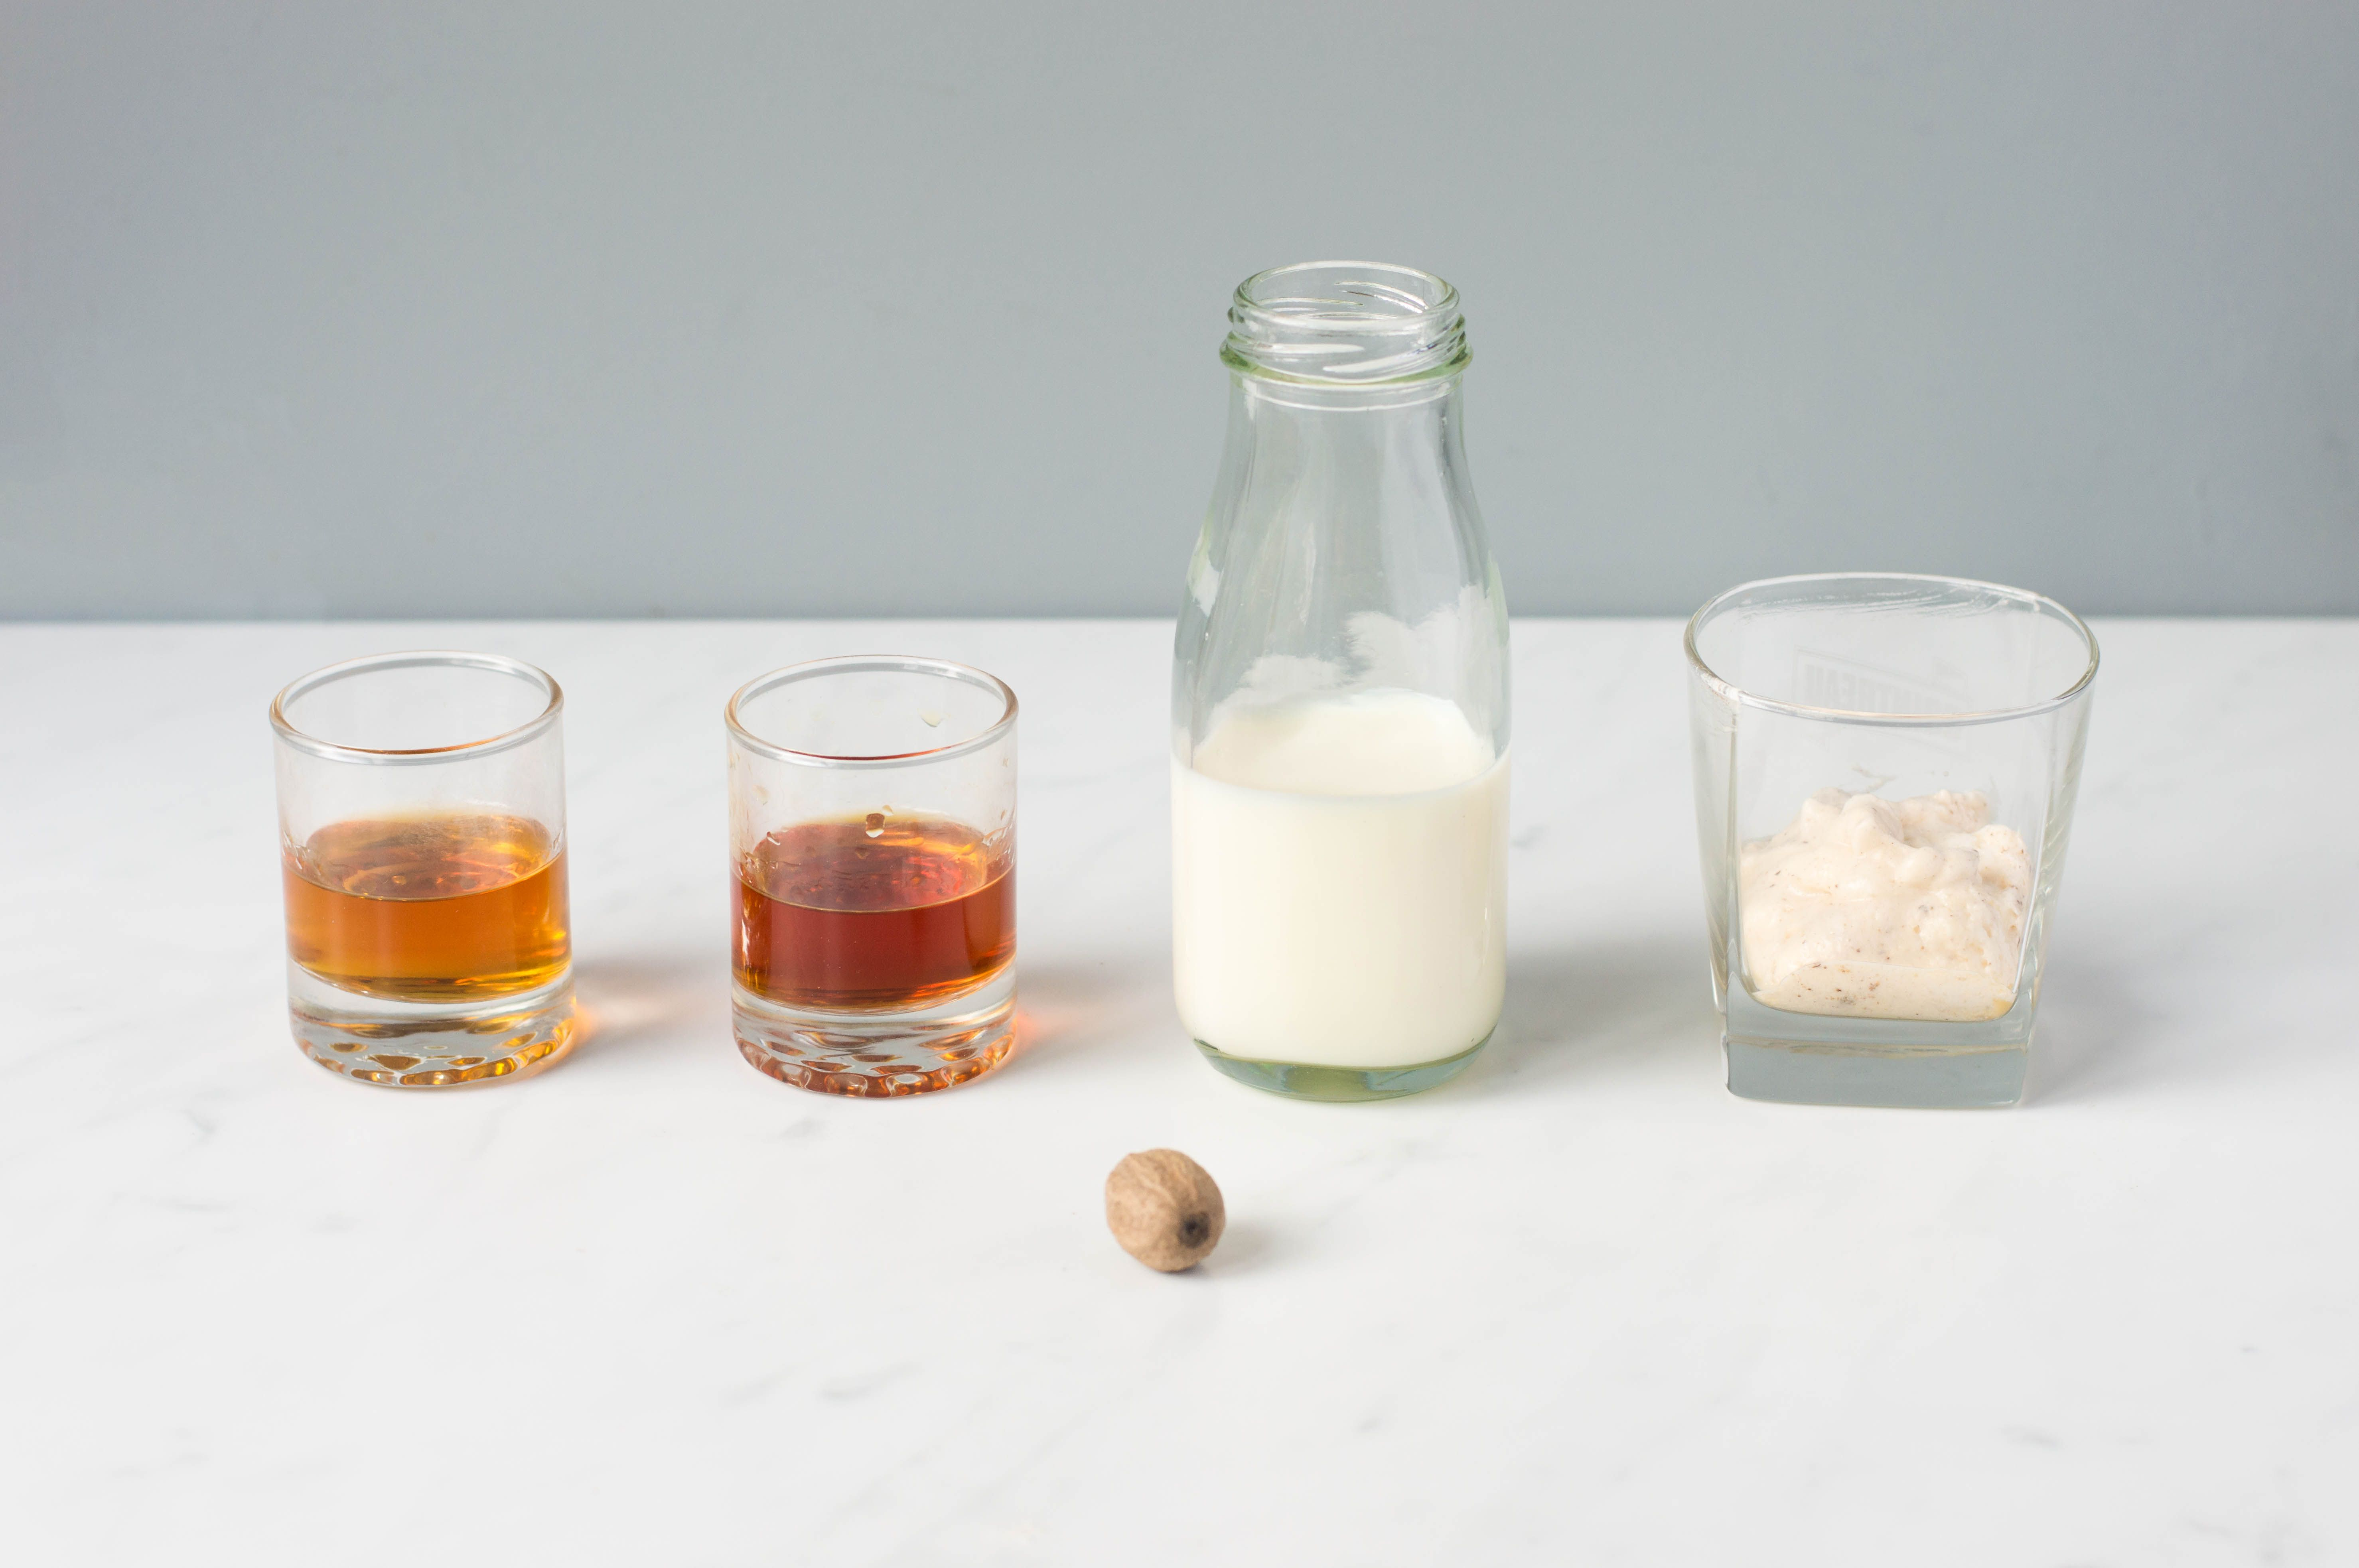 Ingredients for making the Tom and Jerry cocktail